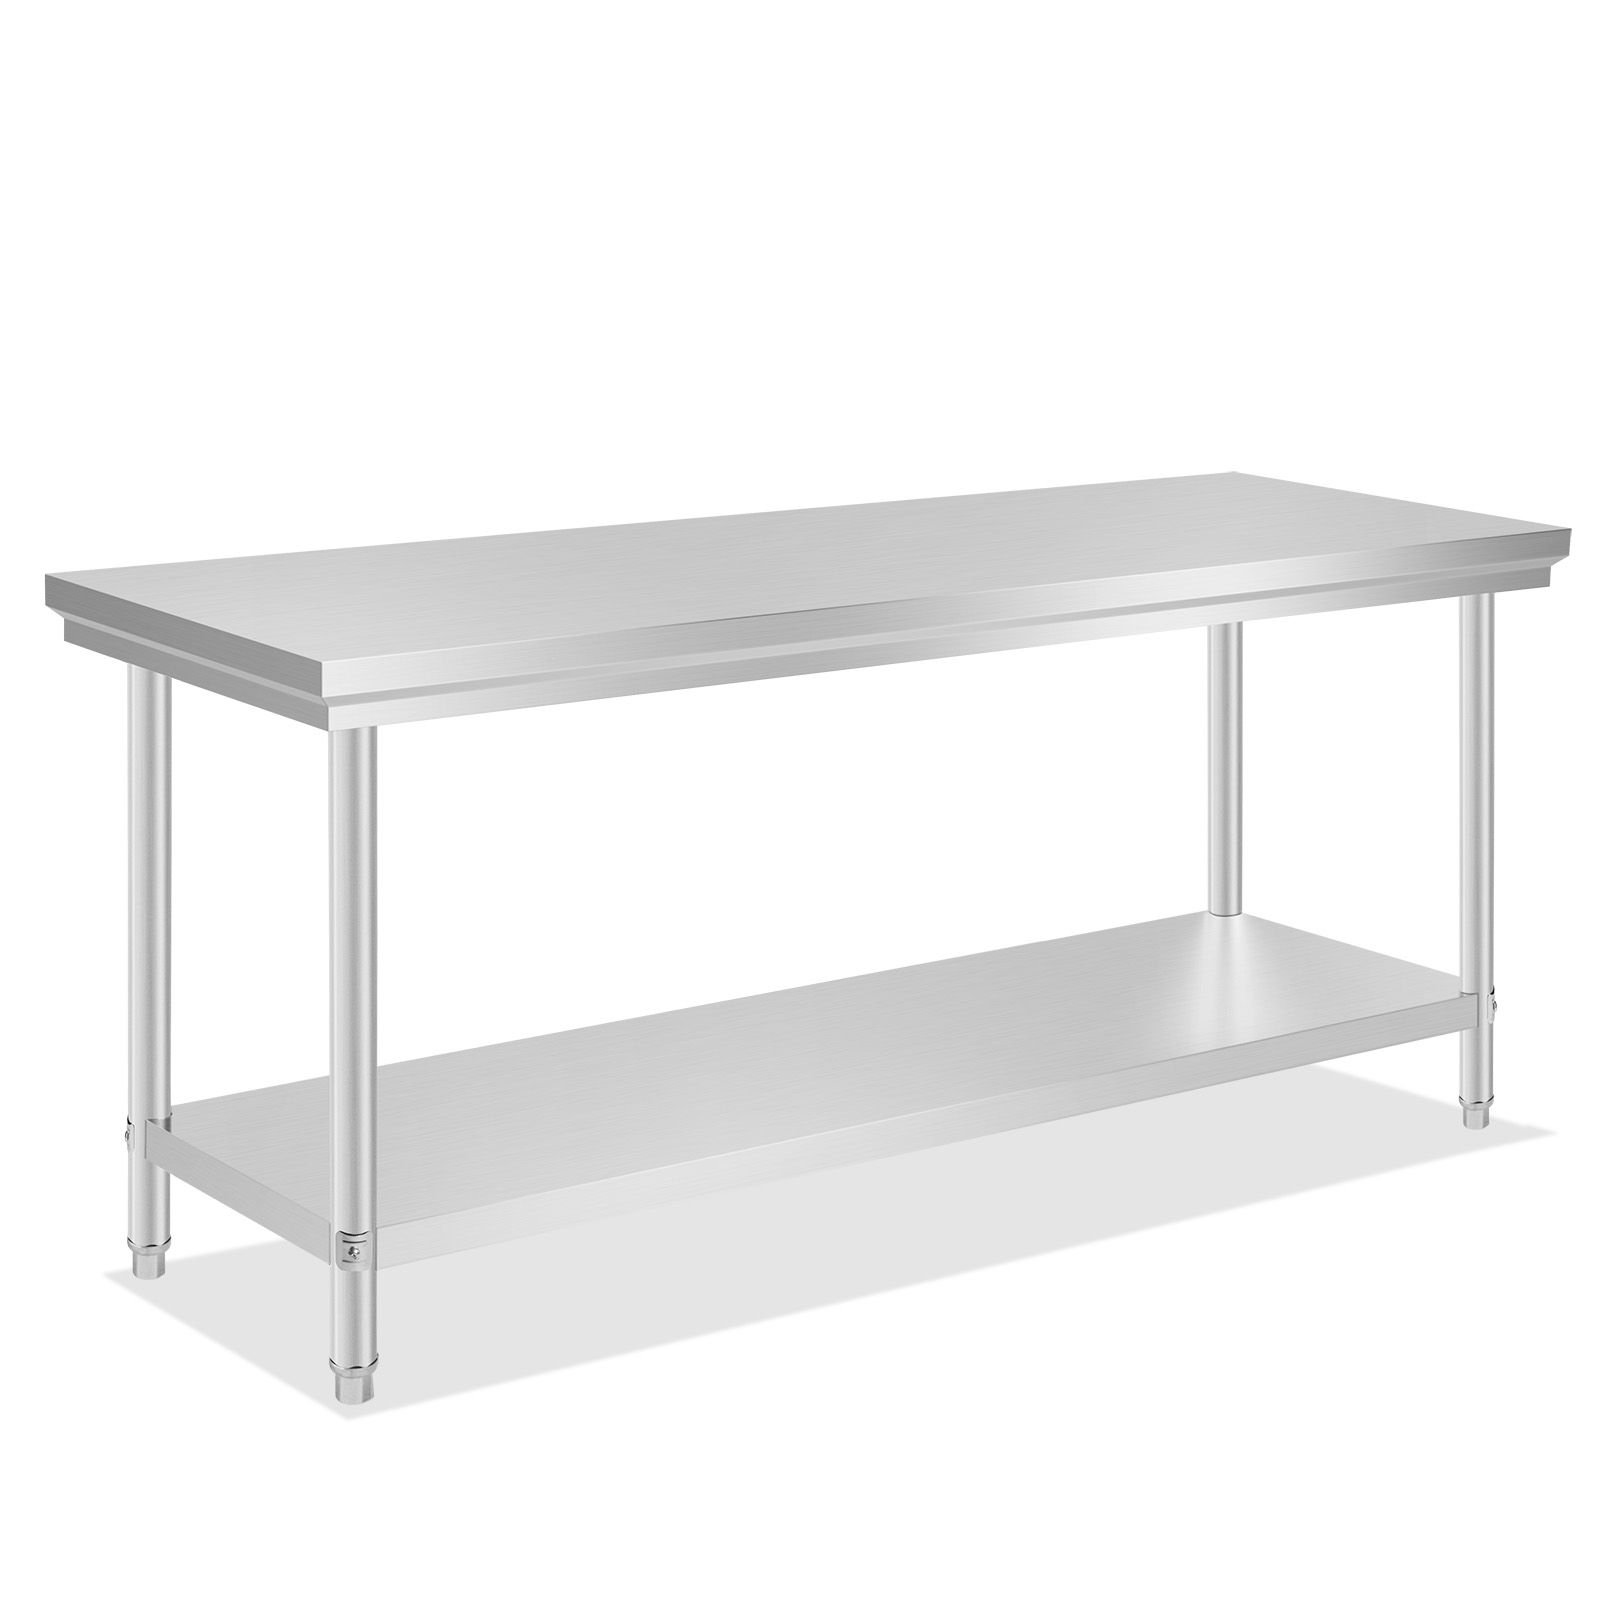 new stainless steel kitchen restaurant work bench food prep table